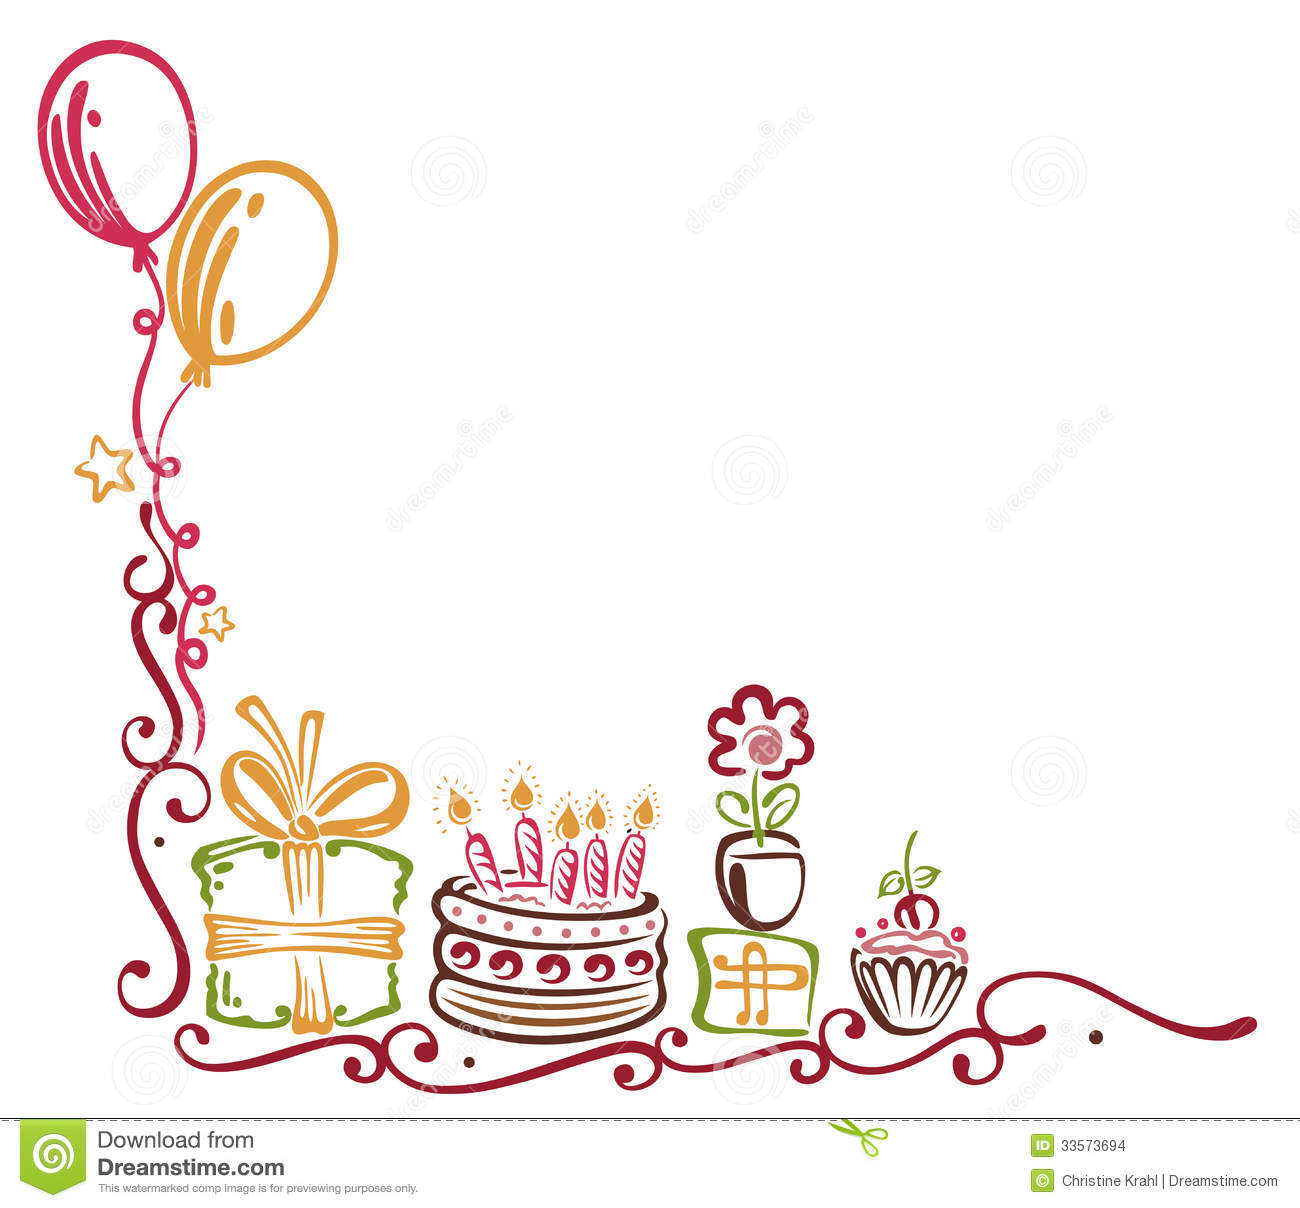 Birthday Border Stock Images - Image: 33573694